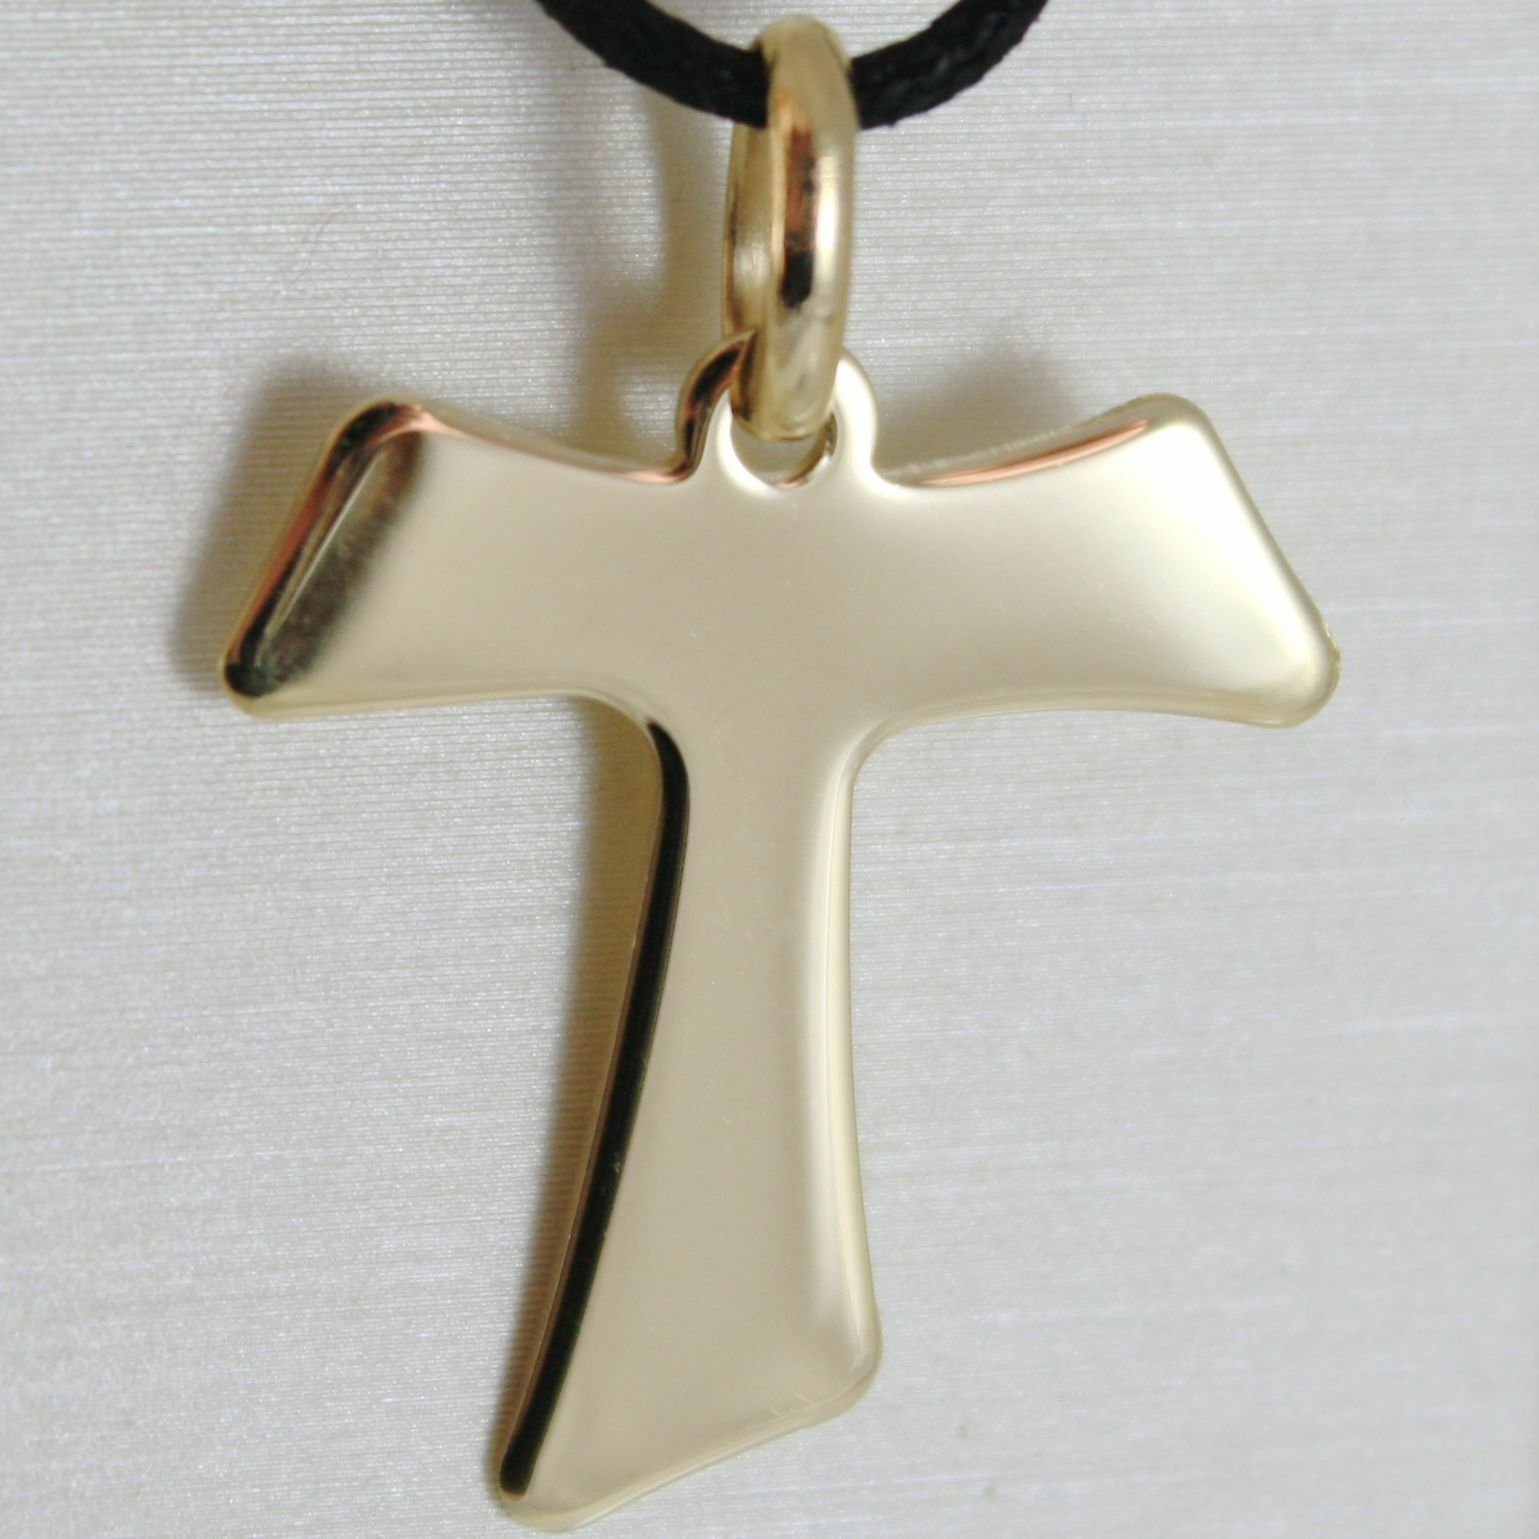 Flat yellow gold cross 750 18k pendant Franciscan tau,, san francesco, Italy